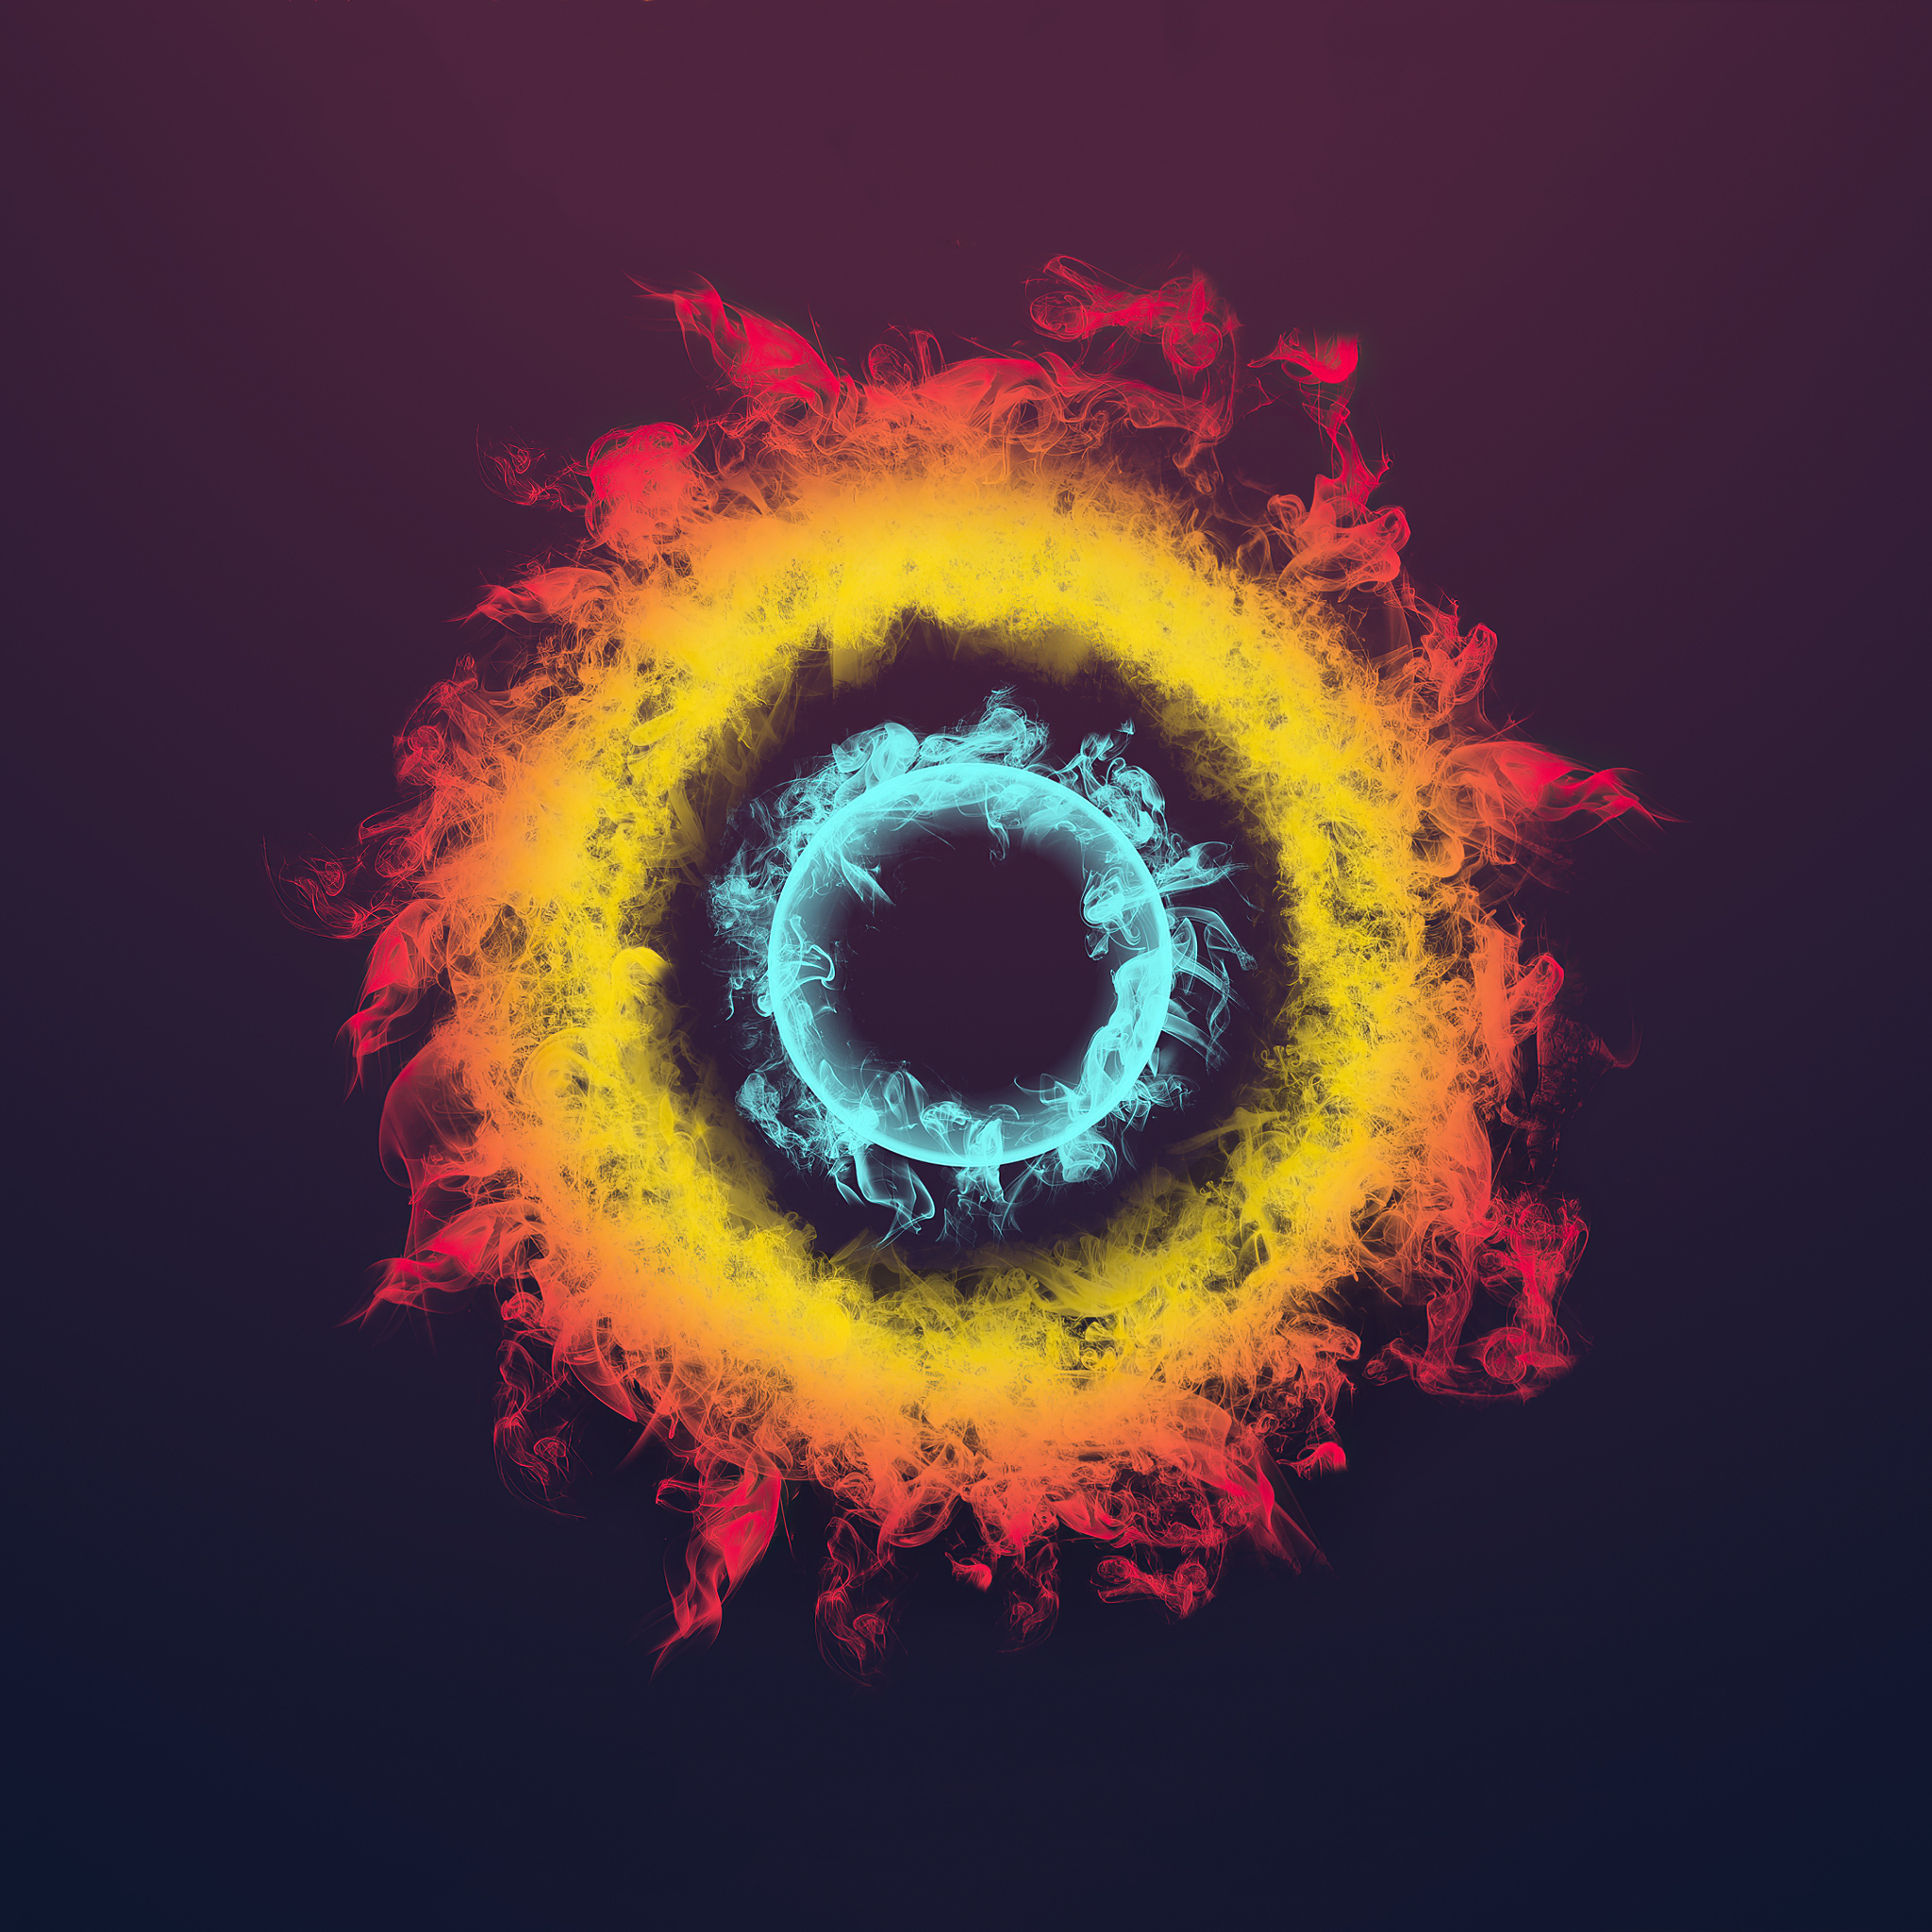 fire-circle-abstract-4k-uq.jpg